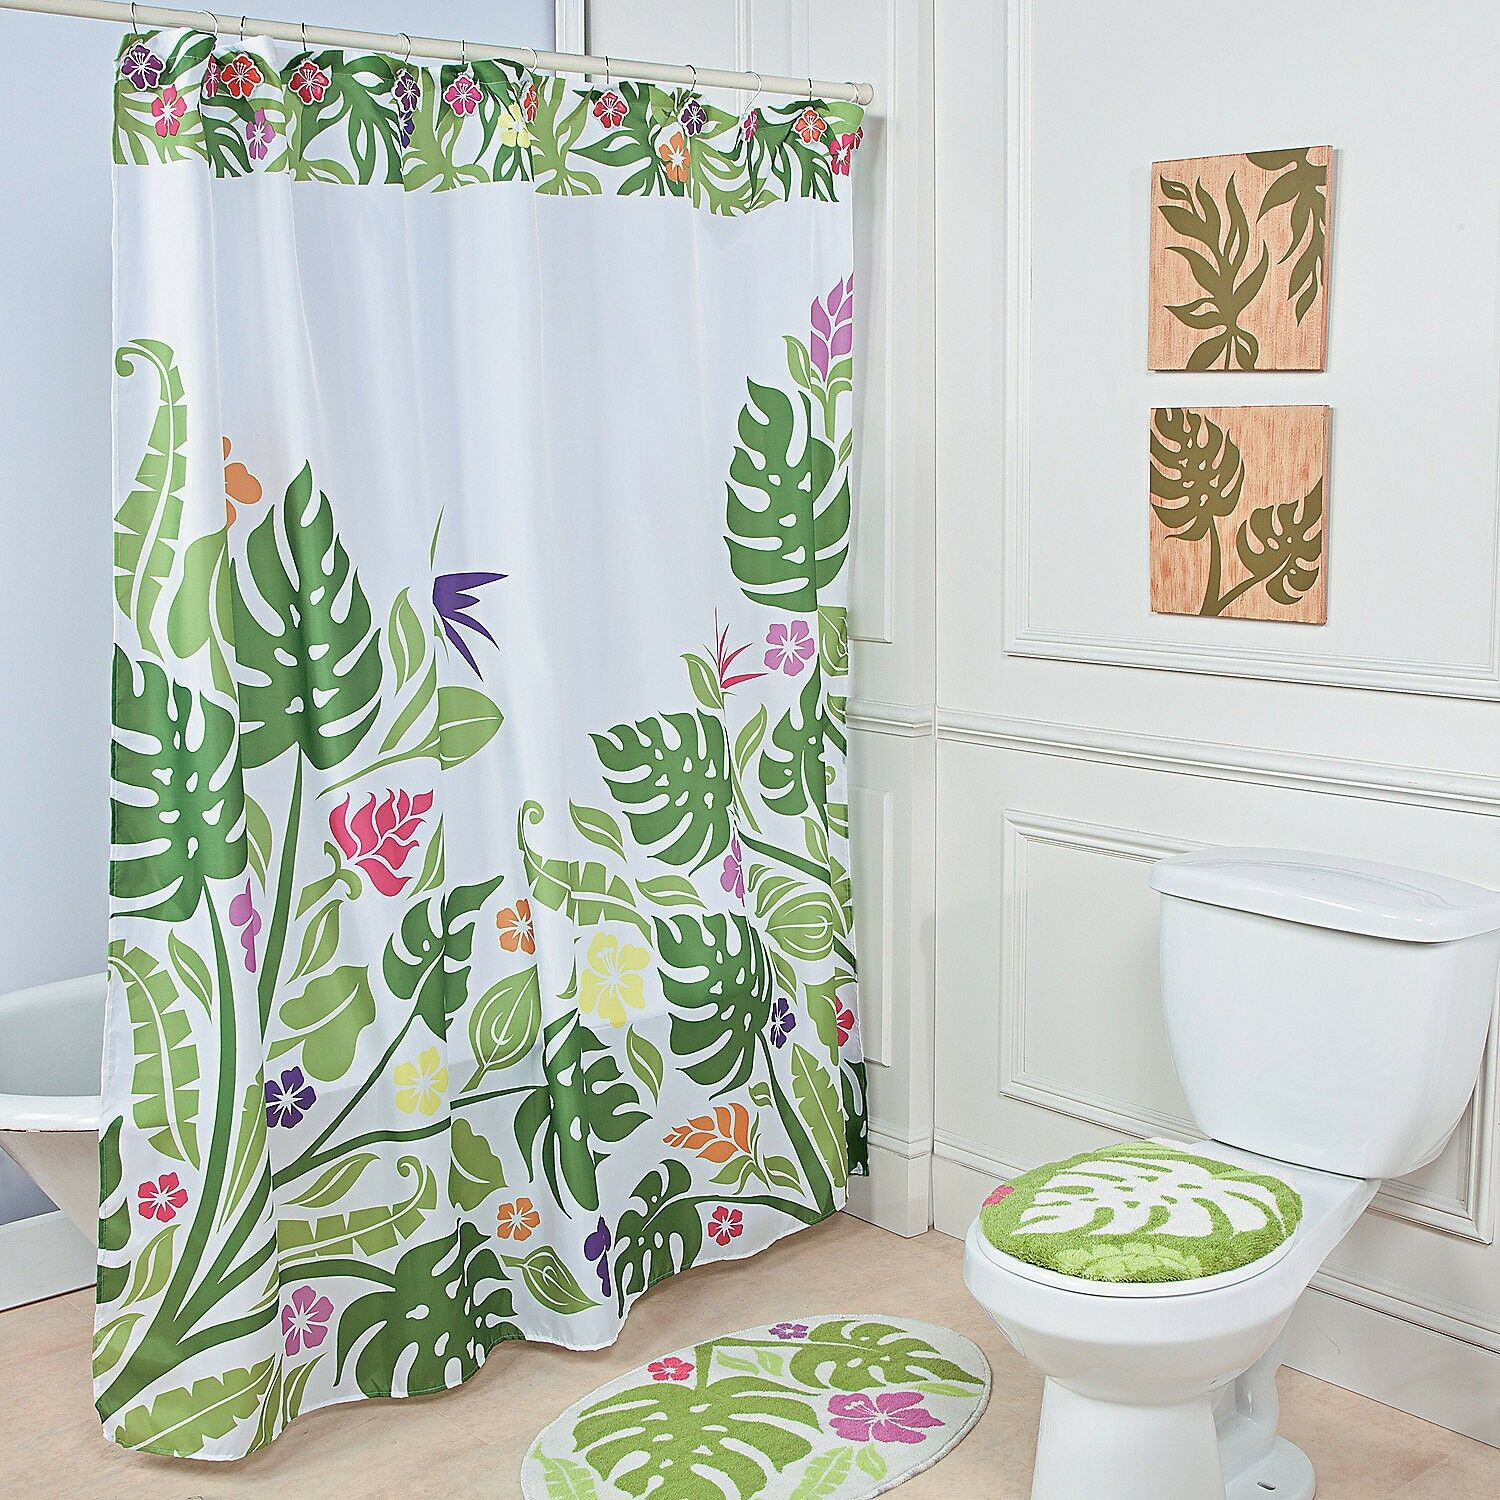 Tropical Grun Palm Leaf Island Hibiscus Bloom Floral Shower Curtain Hook Set F3afb5